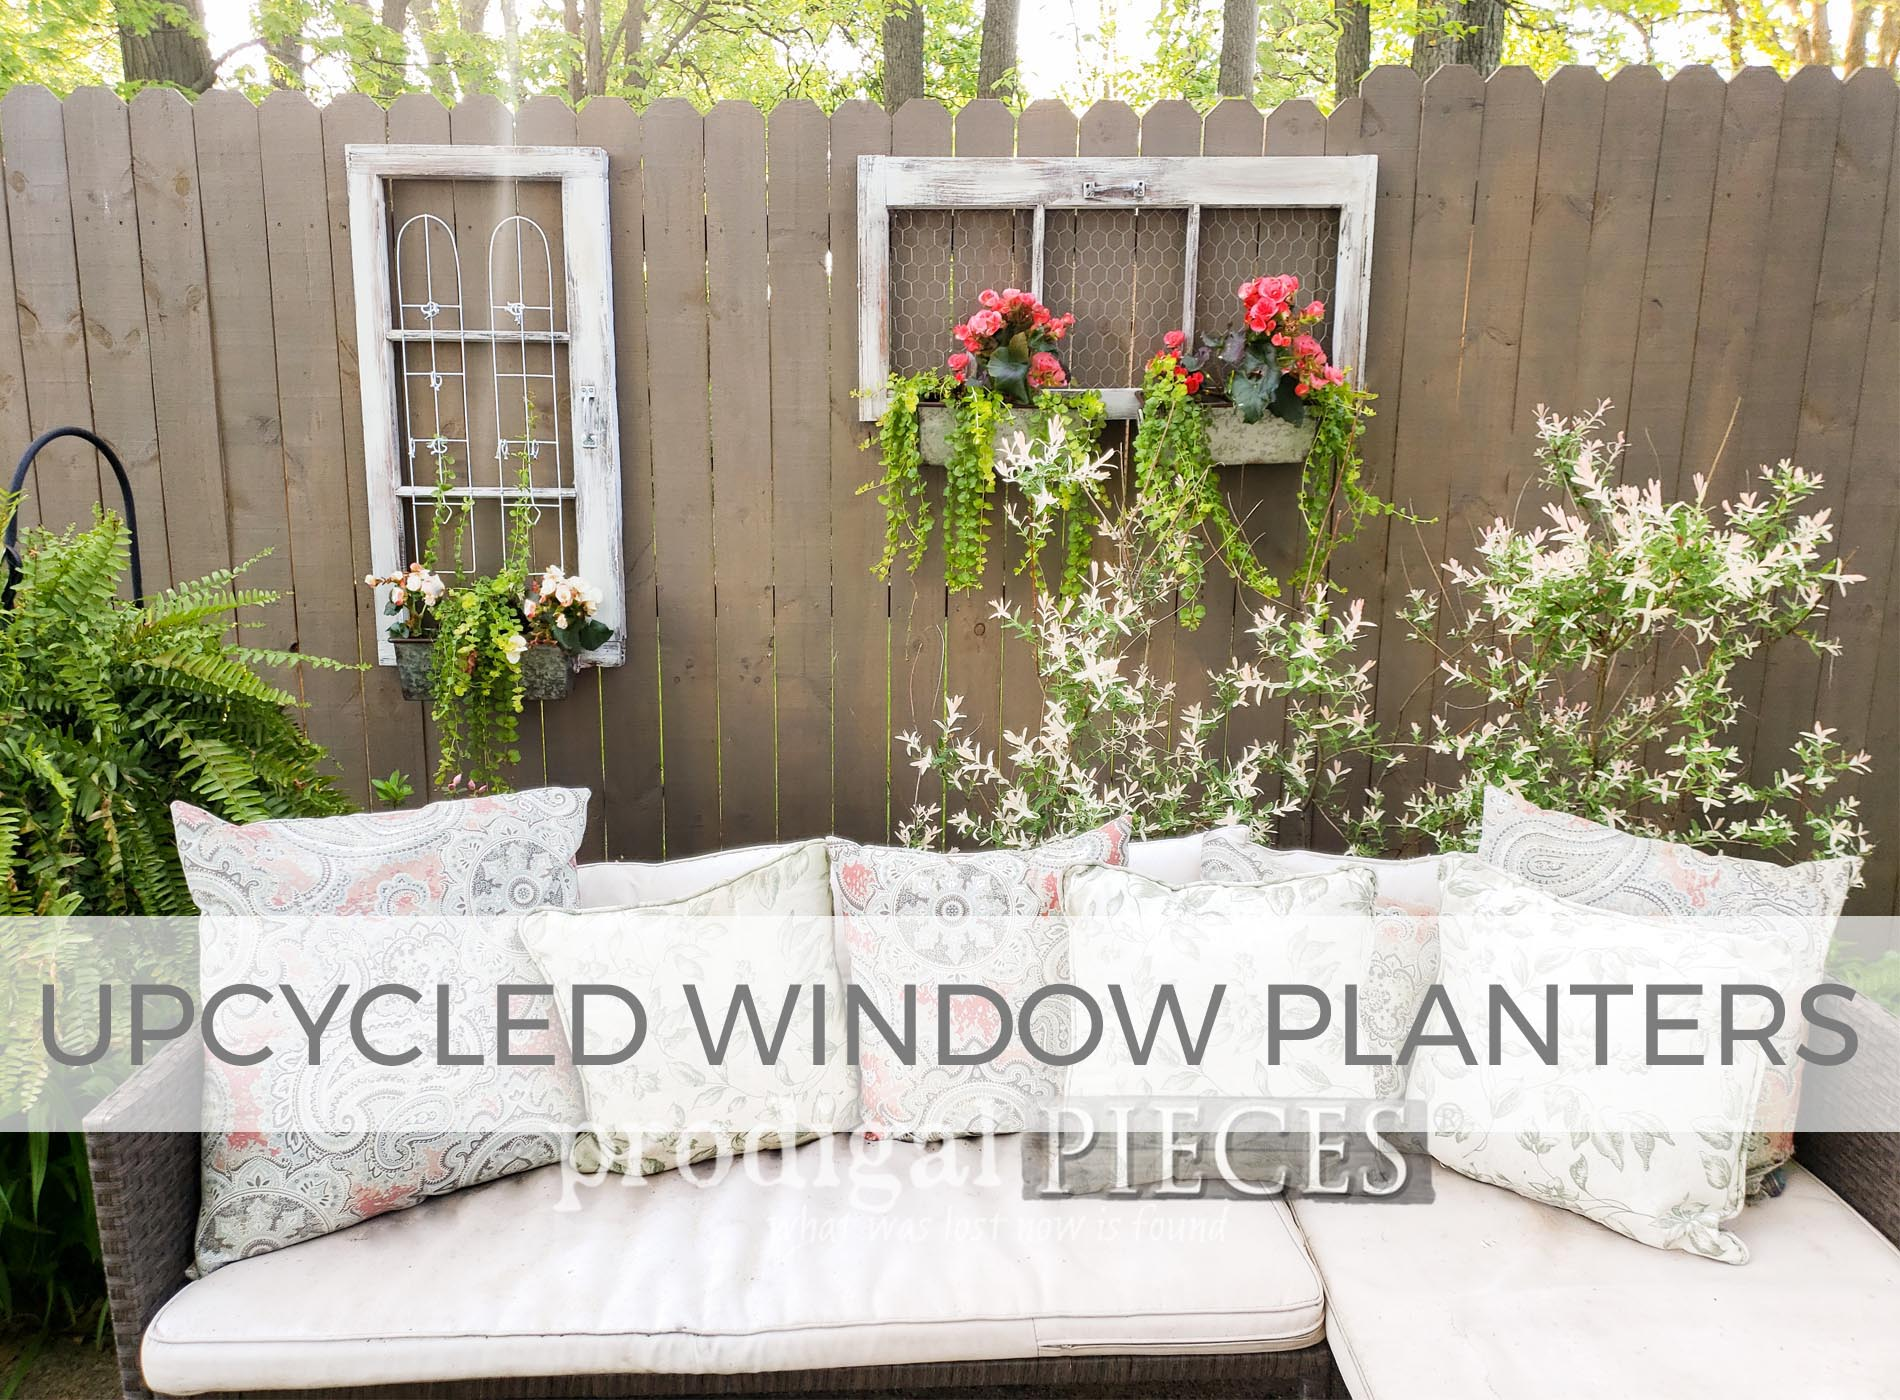 Upcycled Window Planters by Larissa of Prodigal Pieces | prodigalpieces.com #prodigalpieces